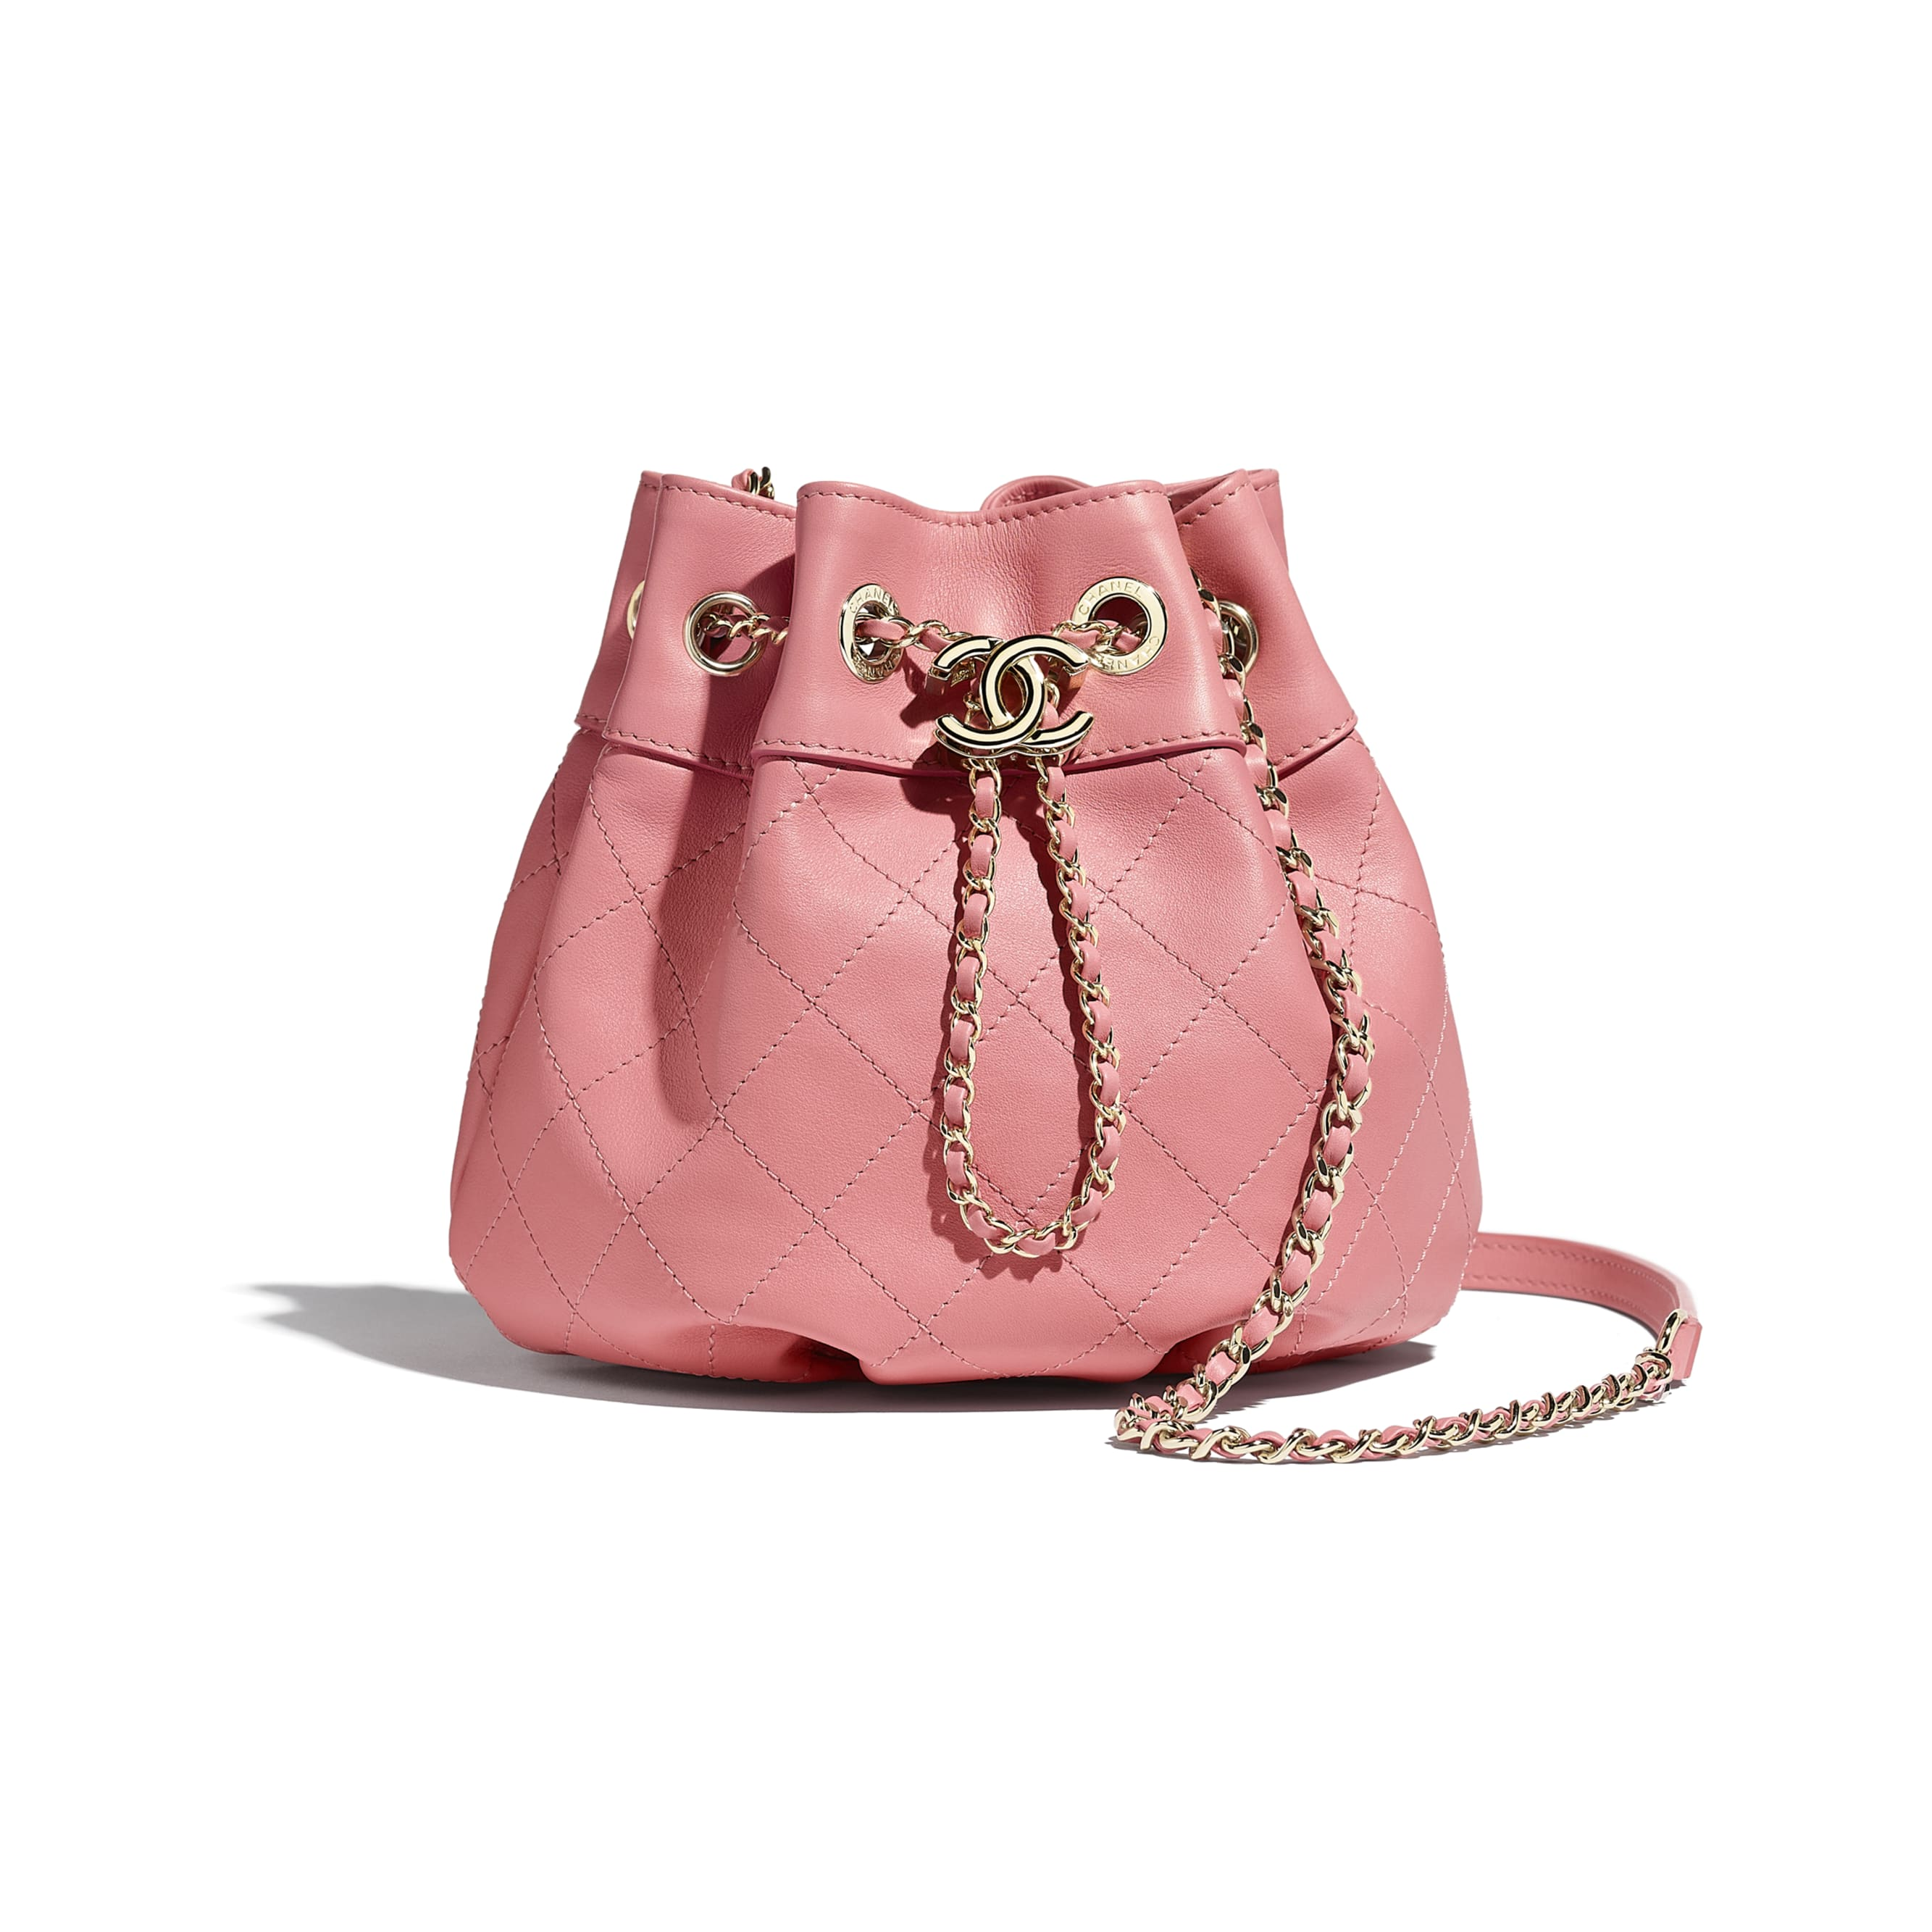 Small Drawstring Bag - Pink - Calfskin & Gold-Tone Metal - CHANEL - Default view - see standard sized version